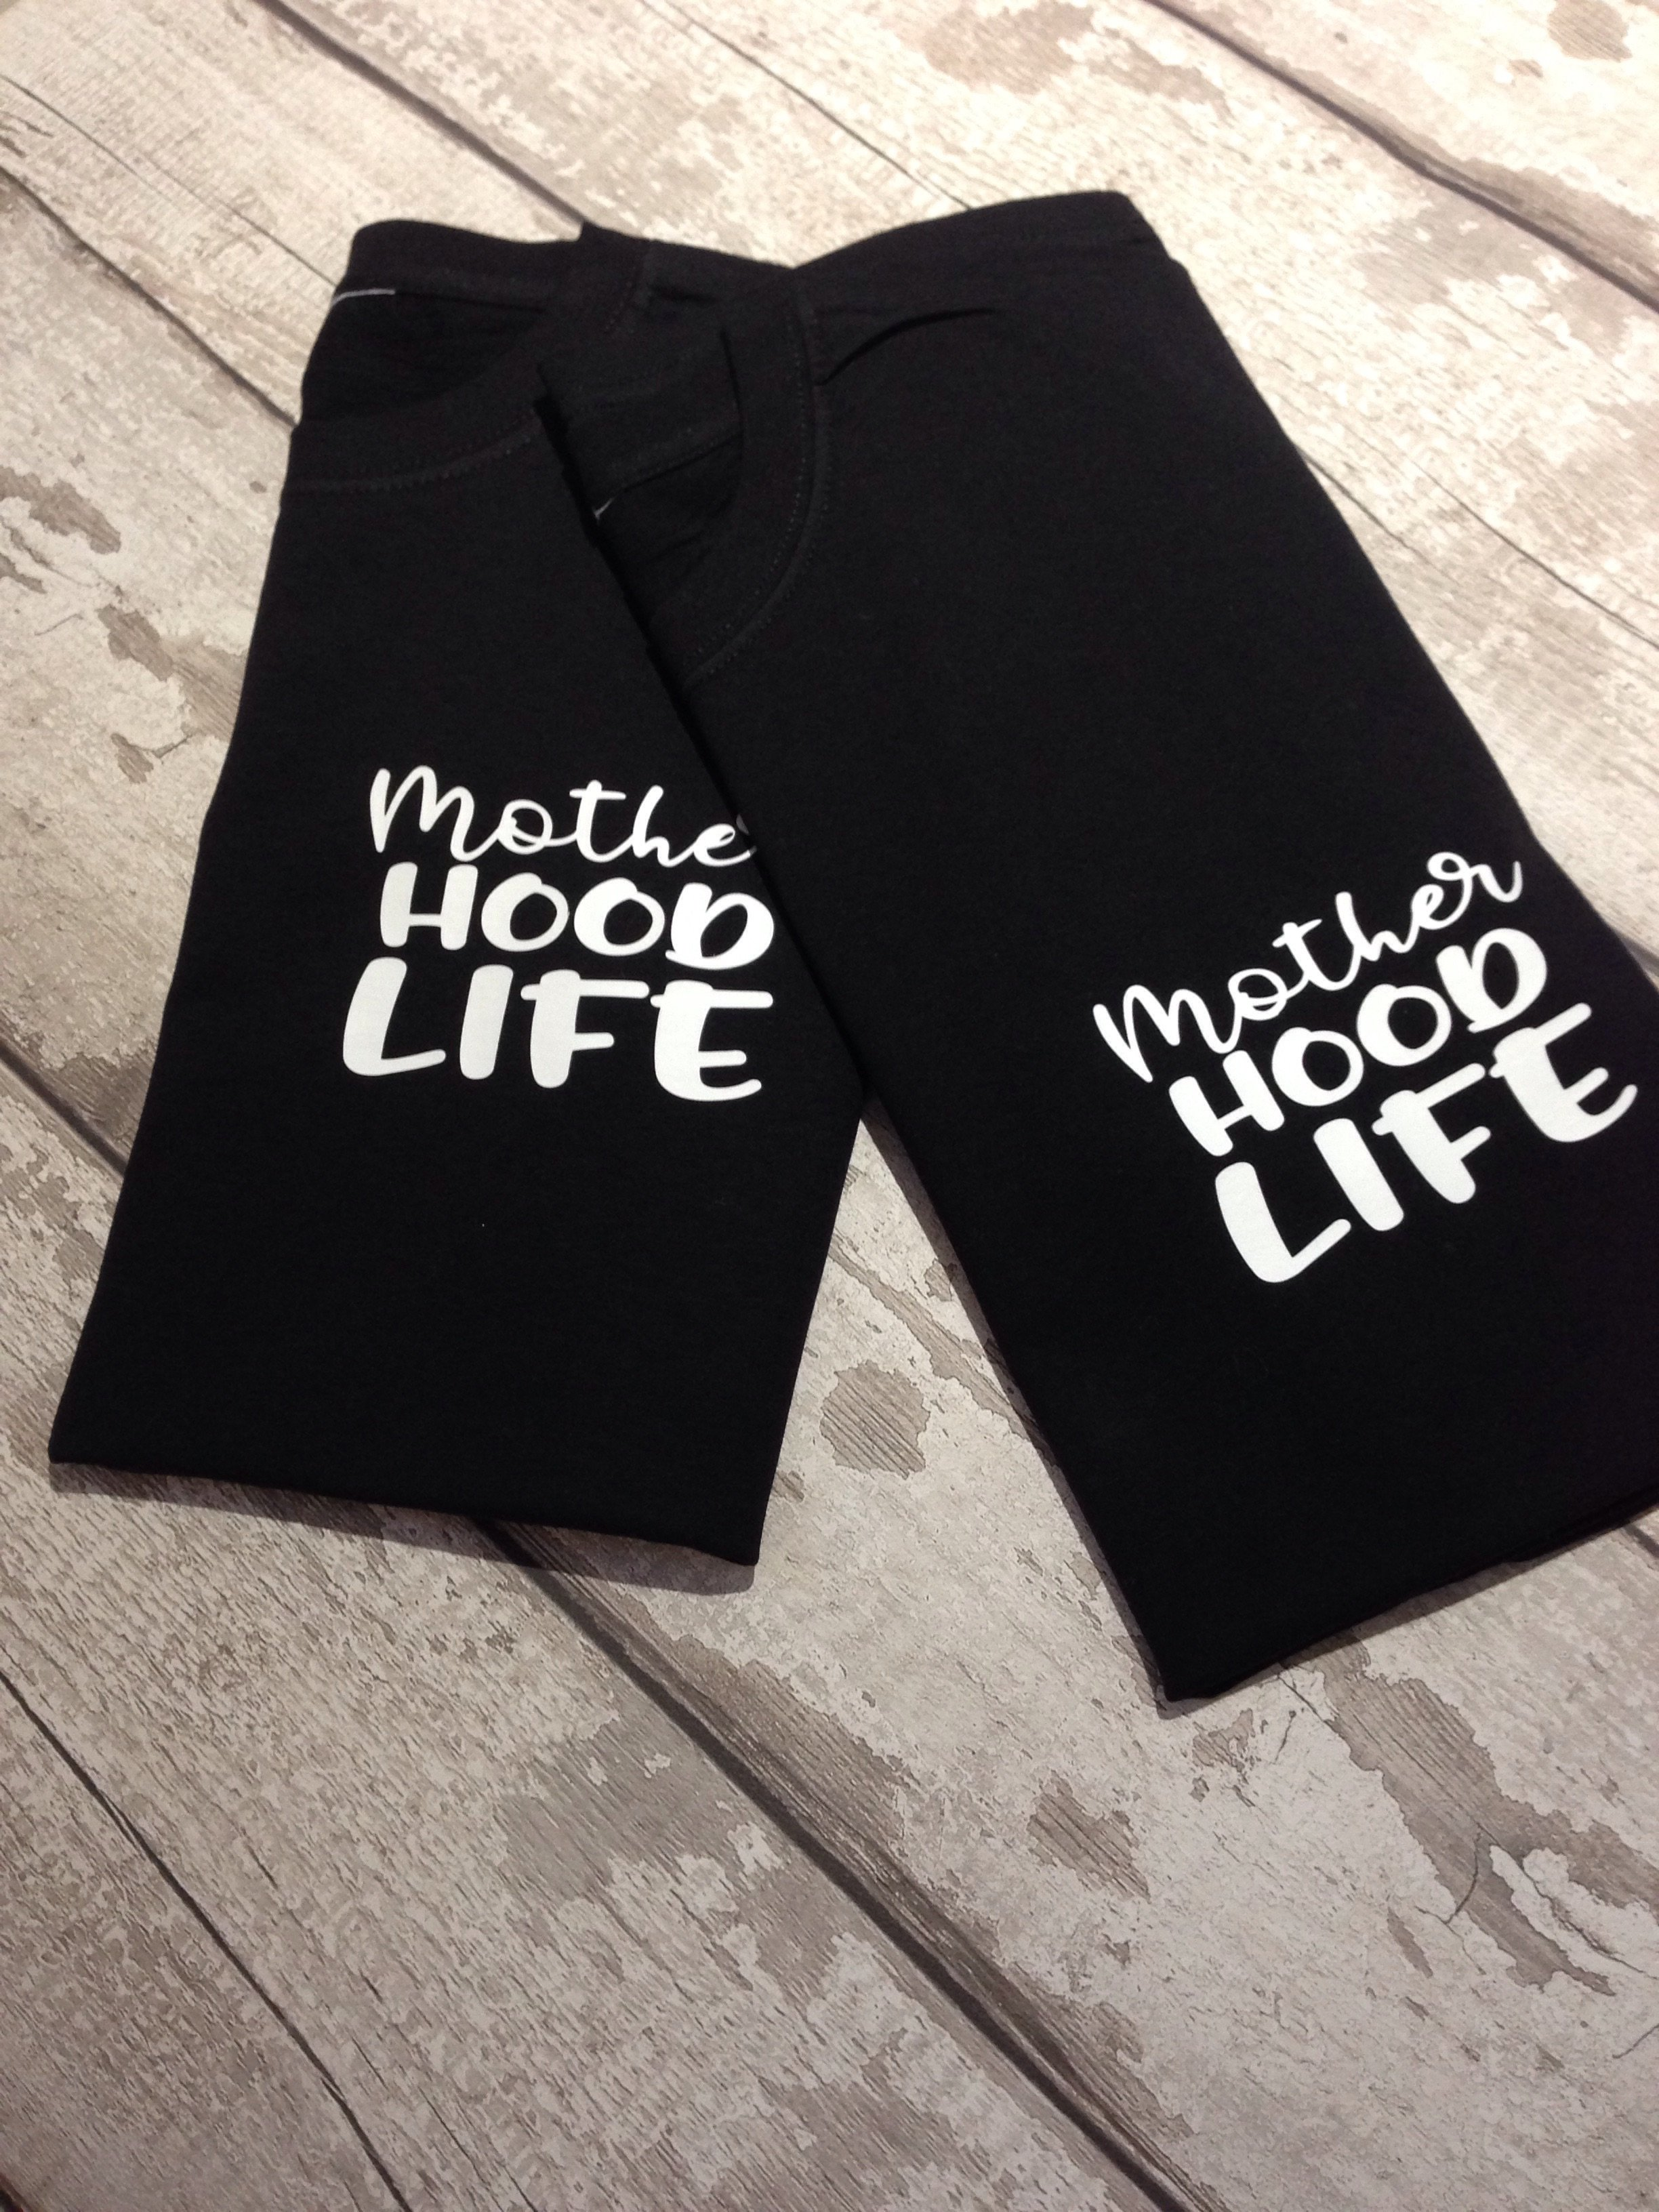 Mother Hood Life T shirt